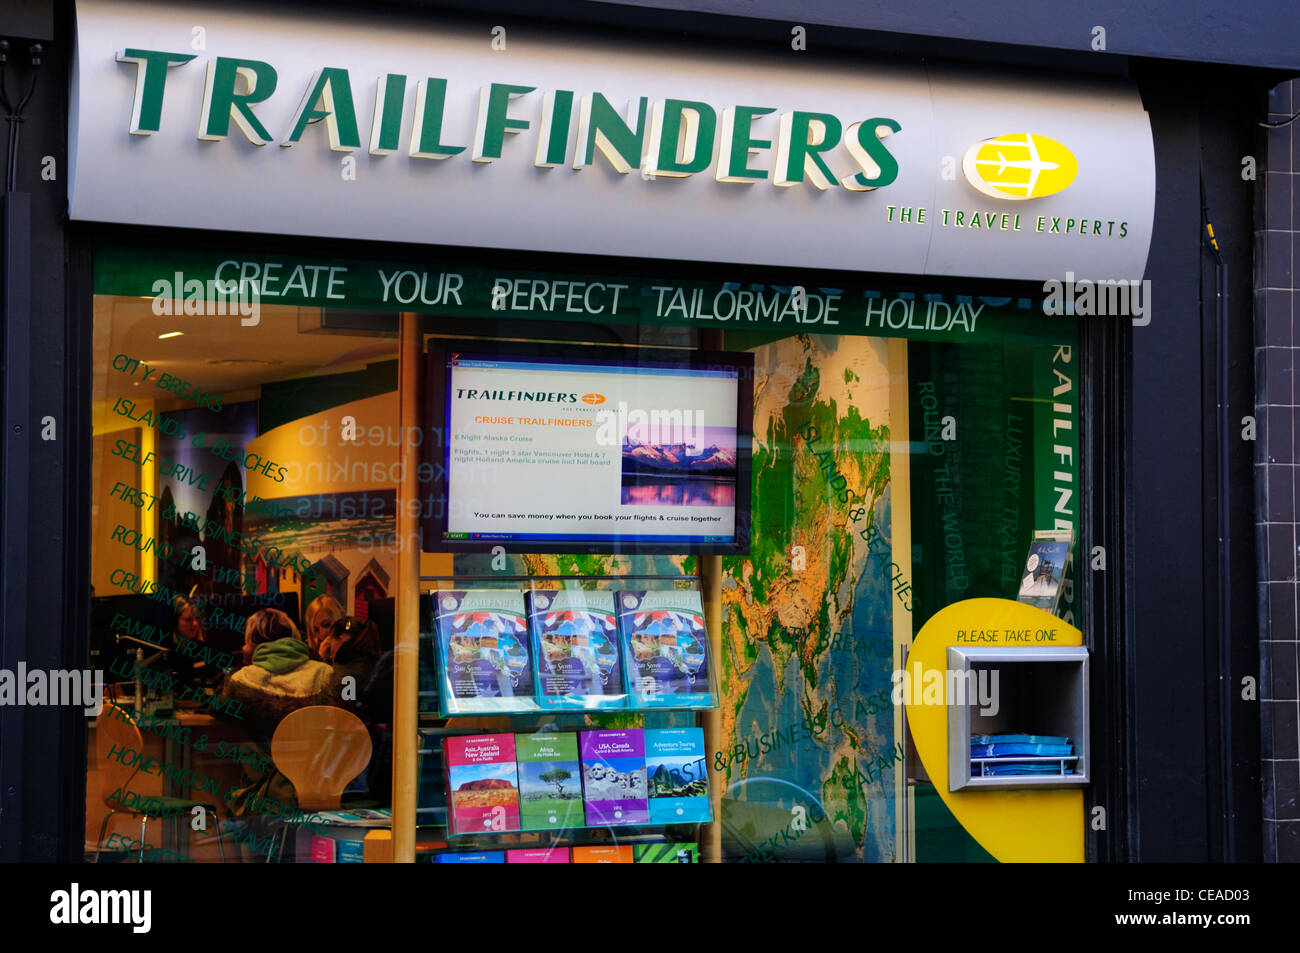 Les experts Voyage Trailfinders, Cambridge, England, UK Photo Stock